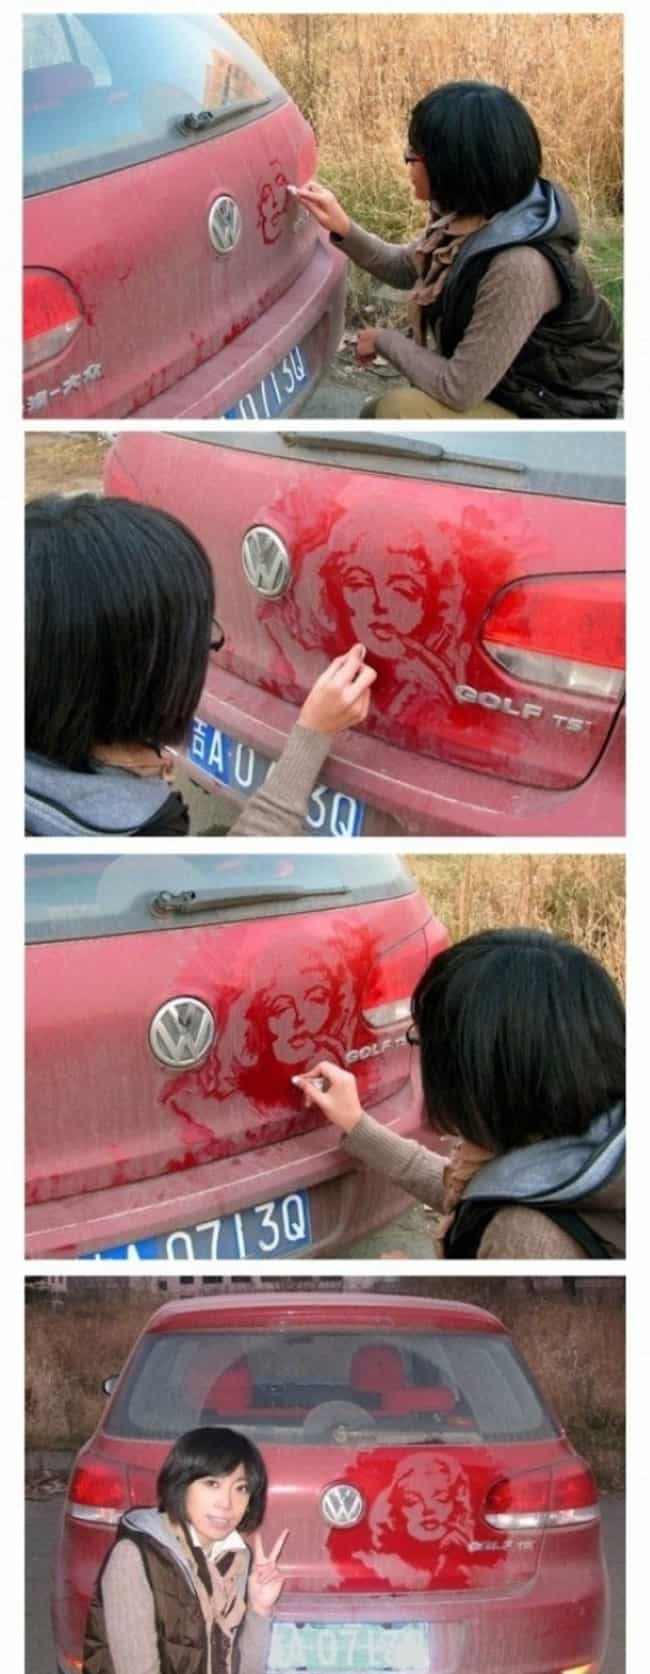 Ashes to Ashes, Dust to.... is listed (or ranked) 8 on the list The Funniest Things Ever Drawn on Dirty Cars